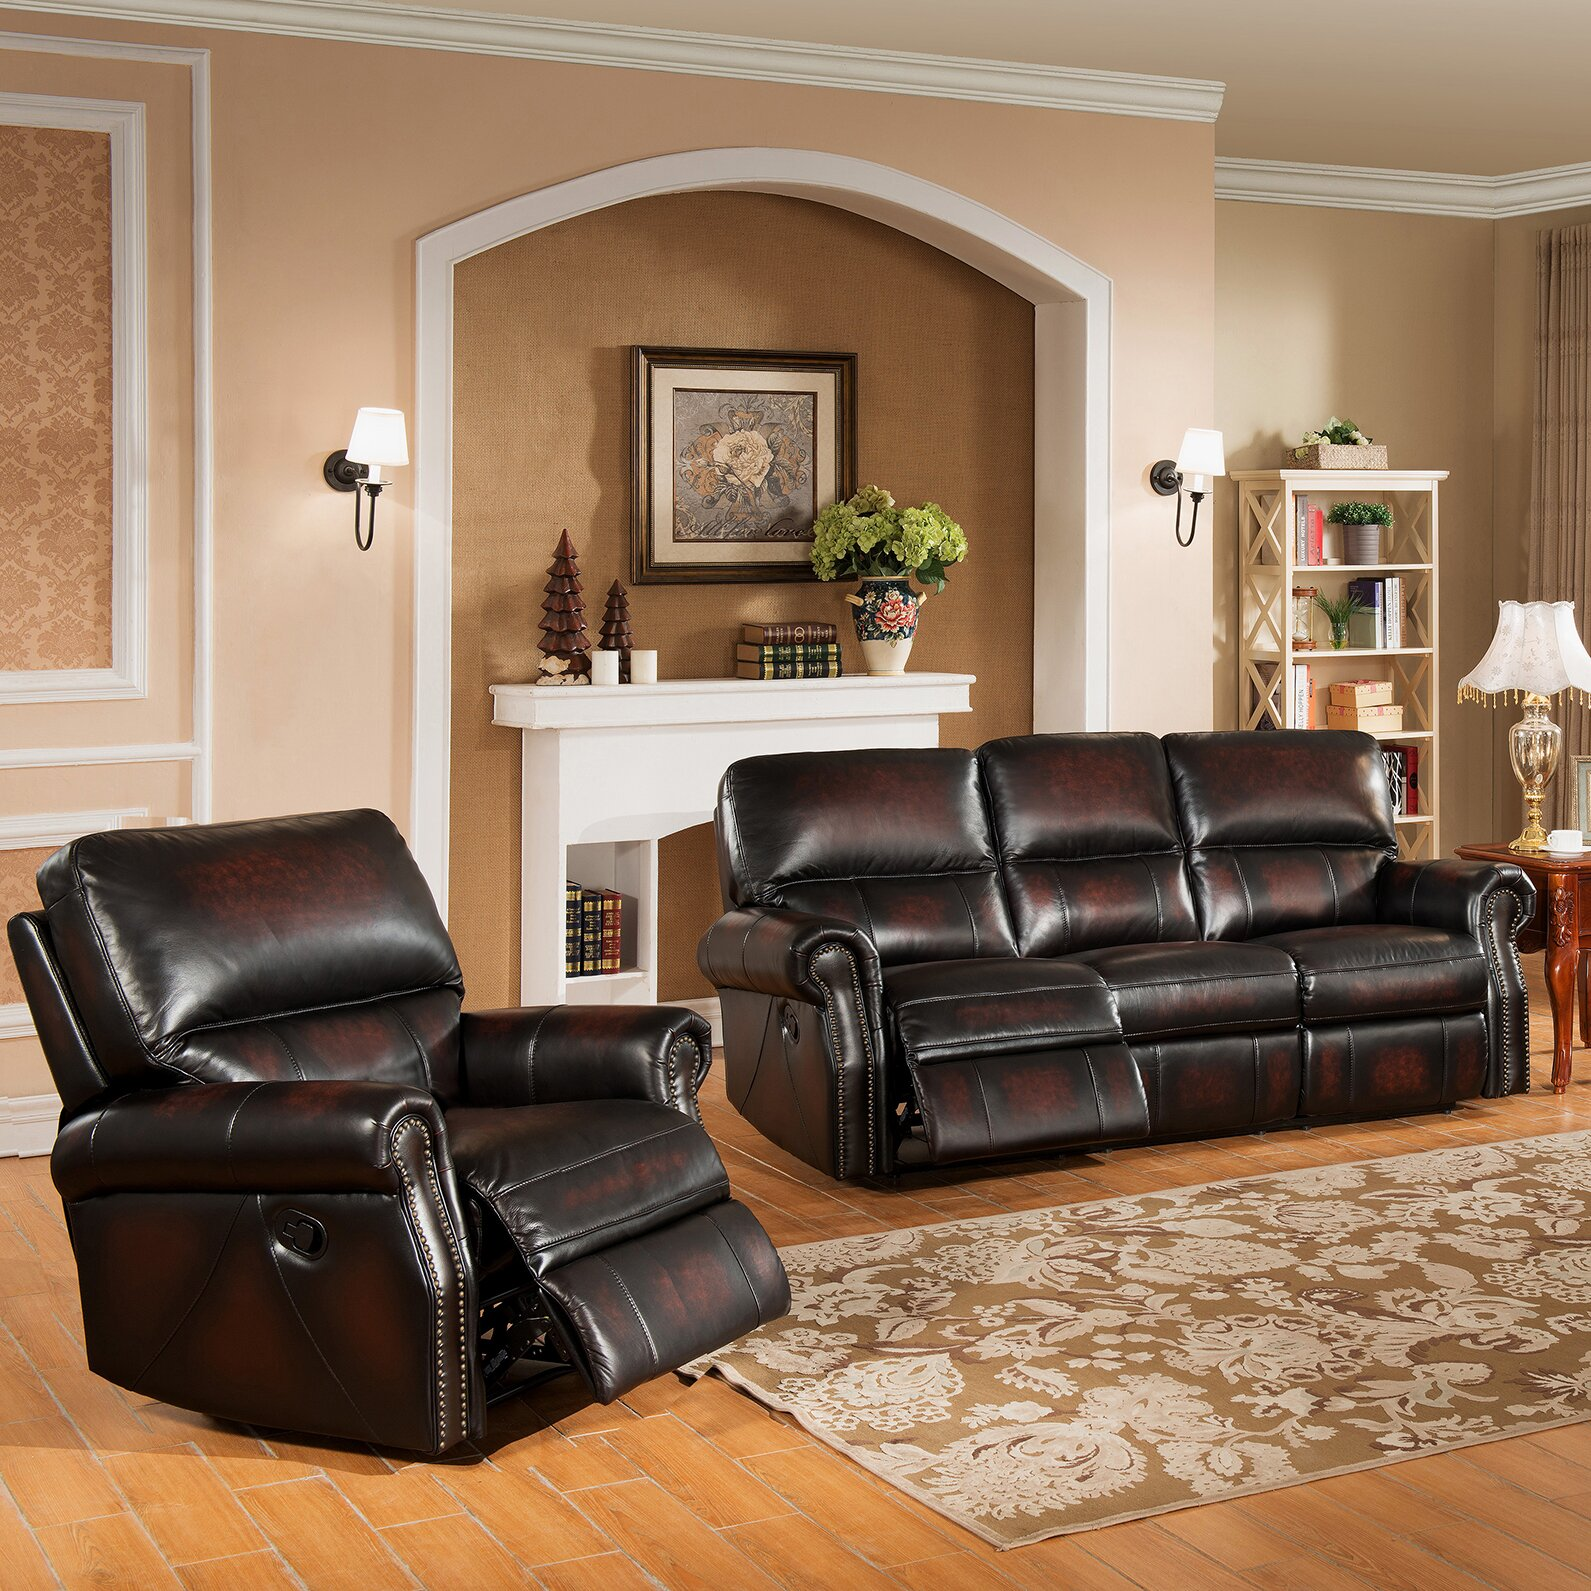 leather living room furniture amax nevada 2 leather living room set amp reviews 16651 | Amax Nevada 2 Piece Leather Living Room Set